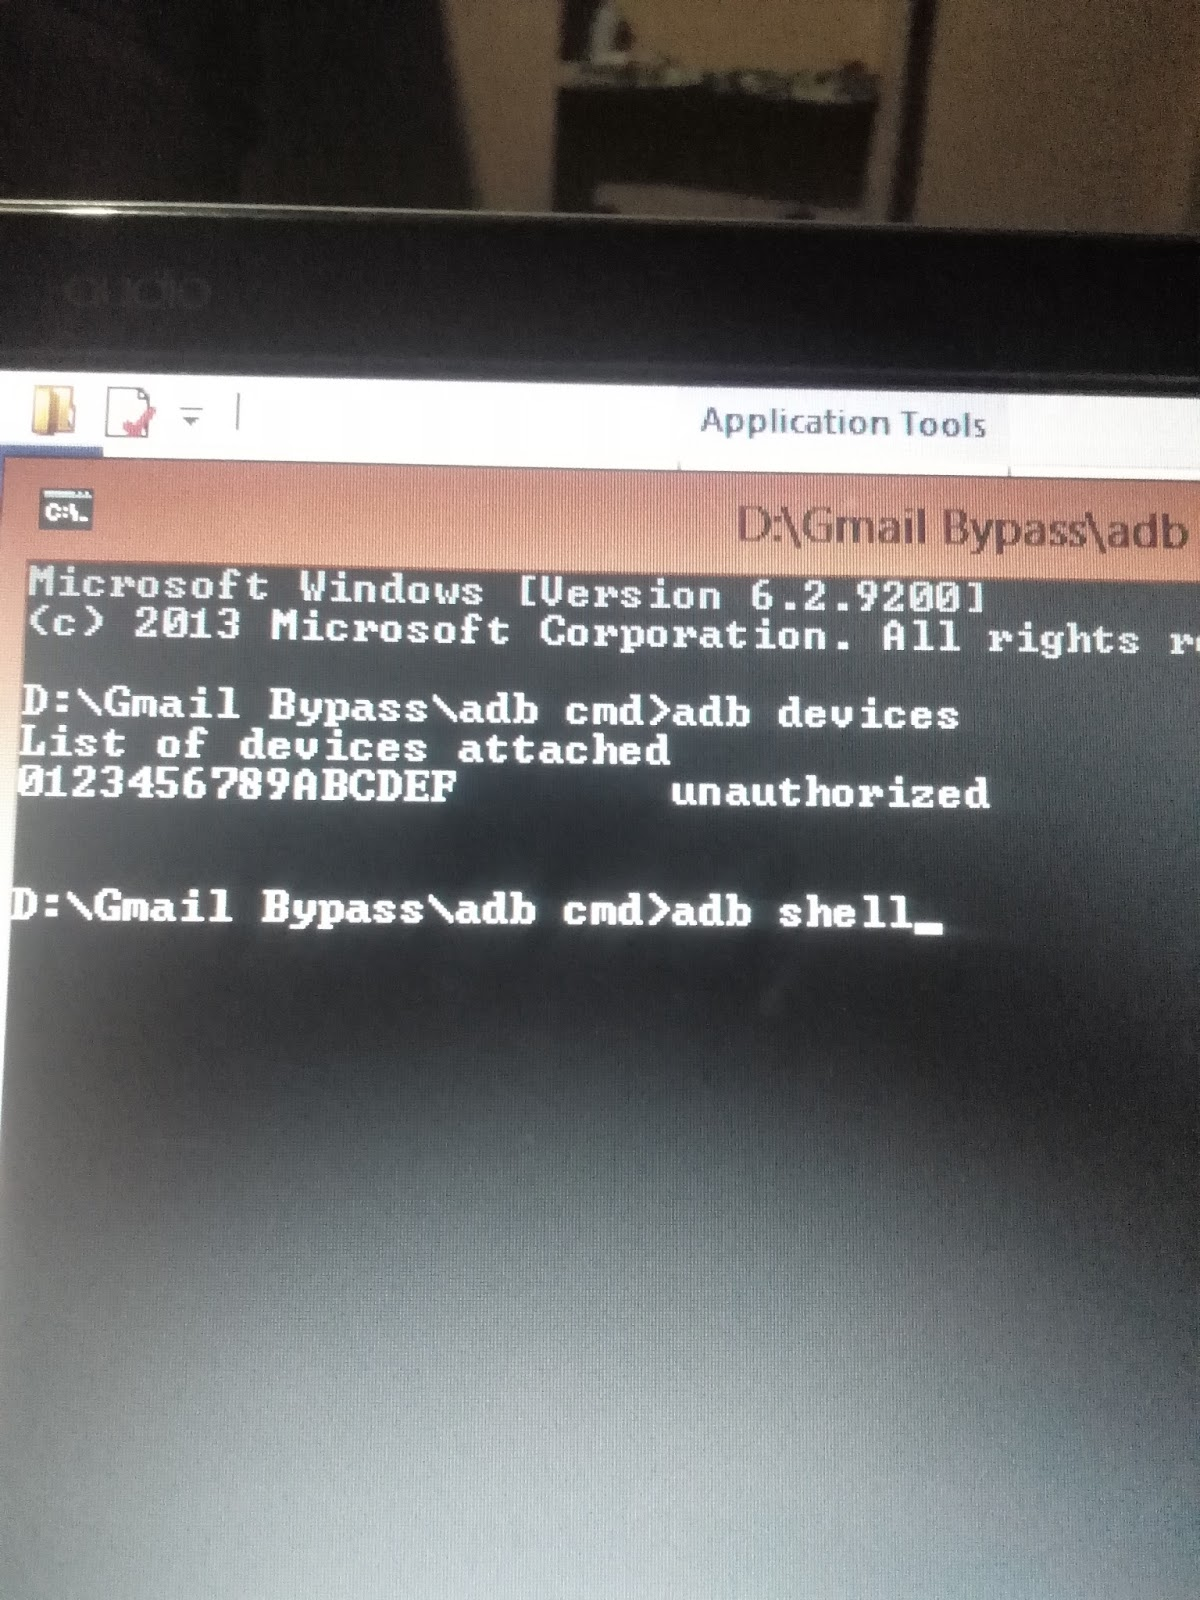 Type Adb Shell in CMD window and press inter Button again